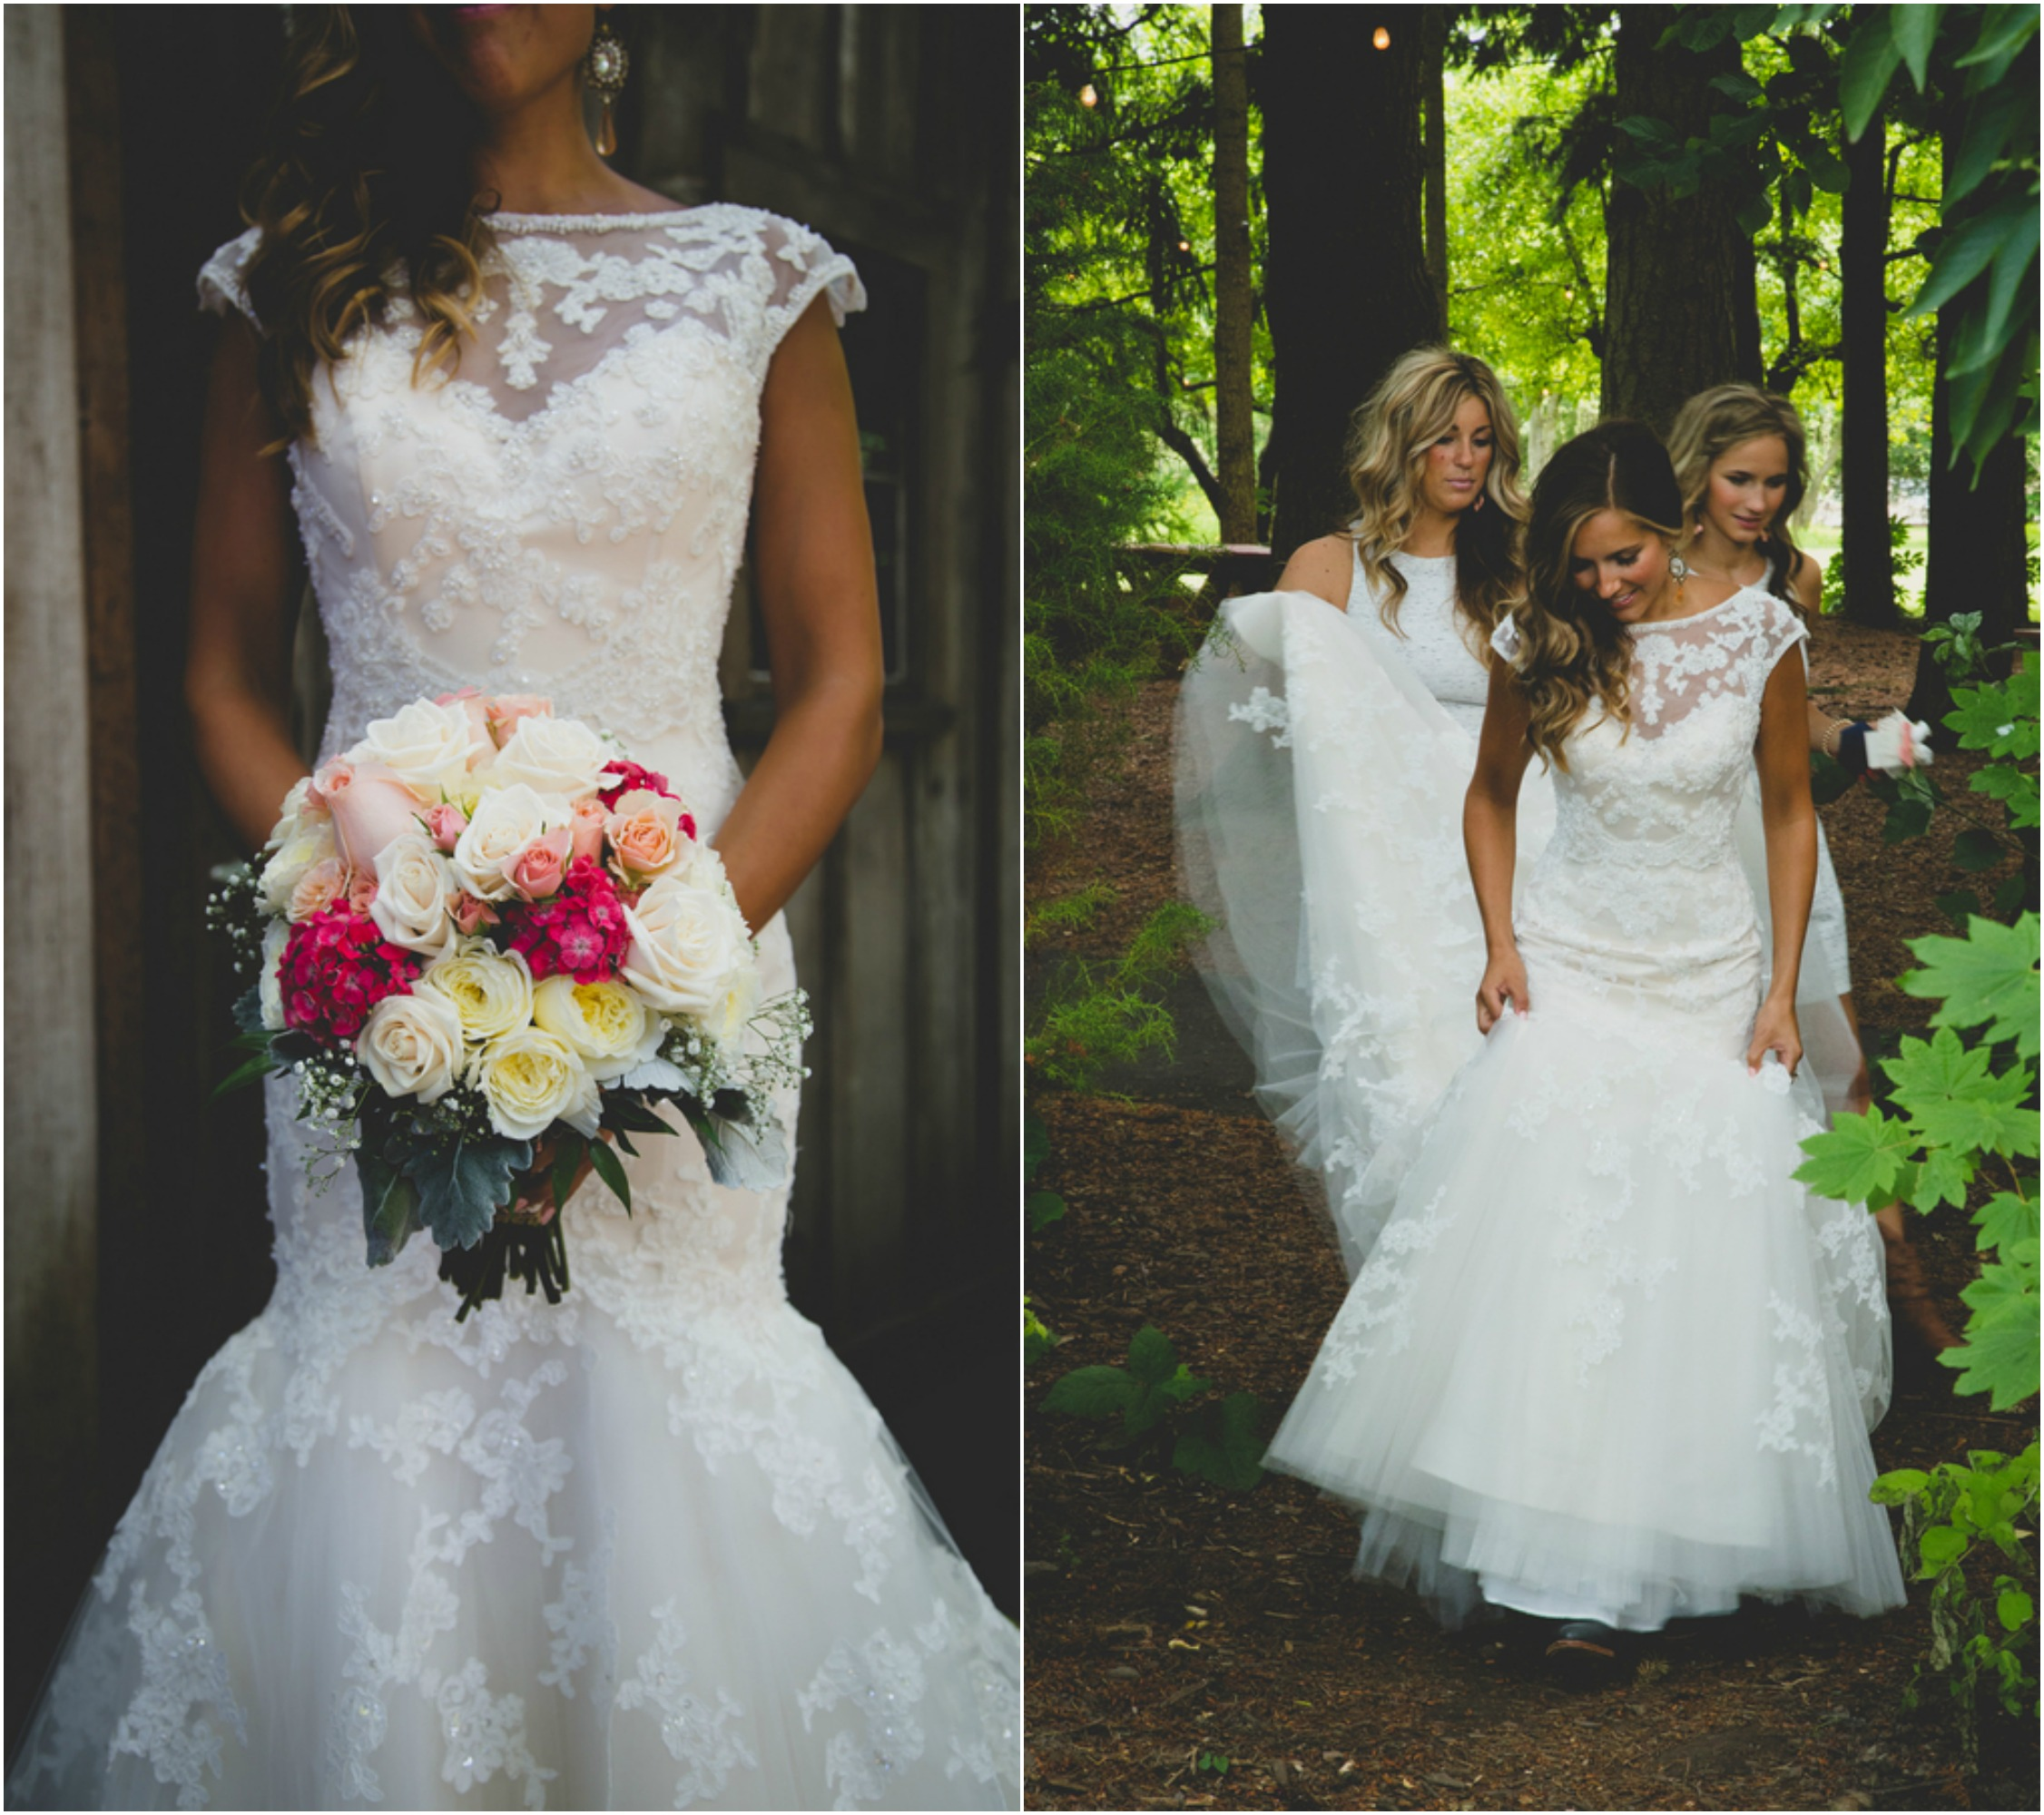 Rustic Wedding Chic: Wedding With Bridesmaids In Cowboy Boots